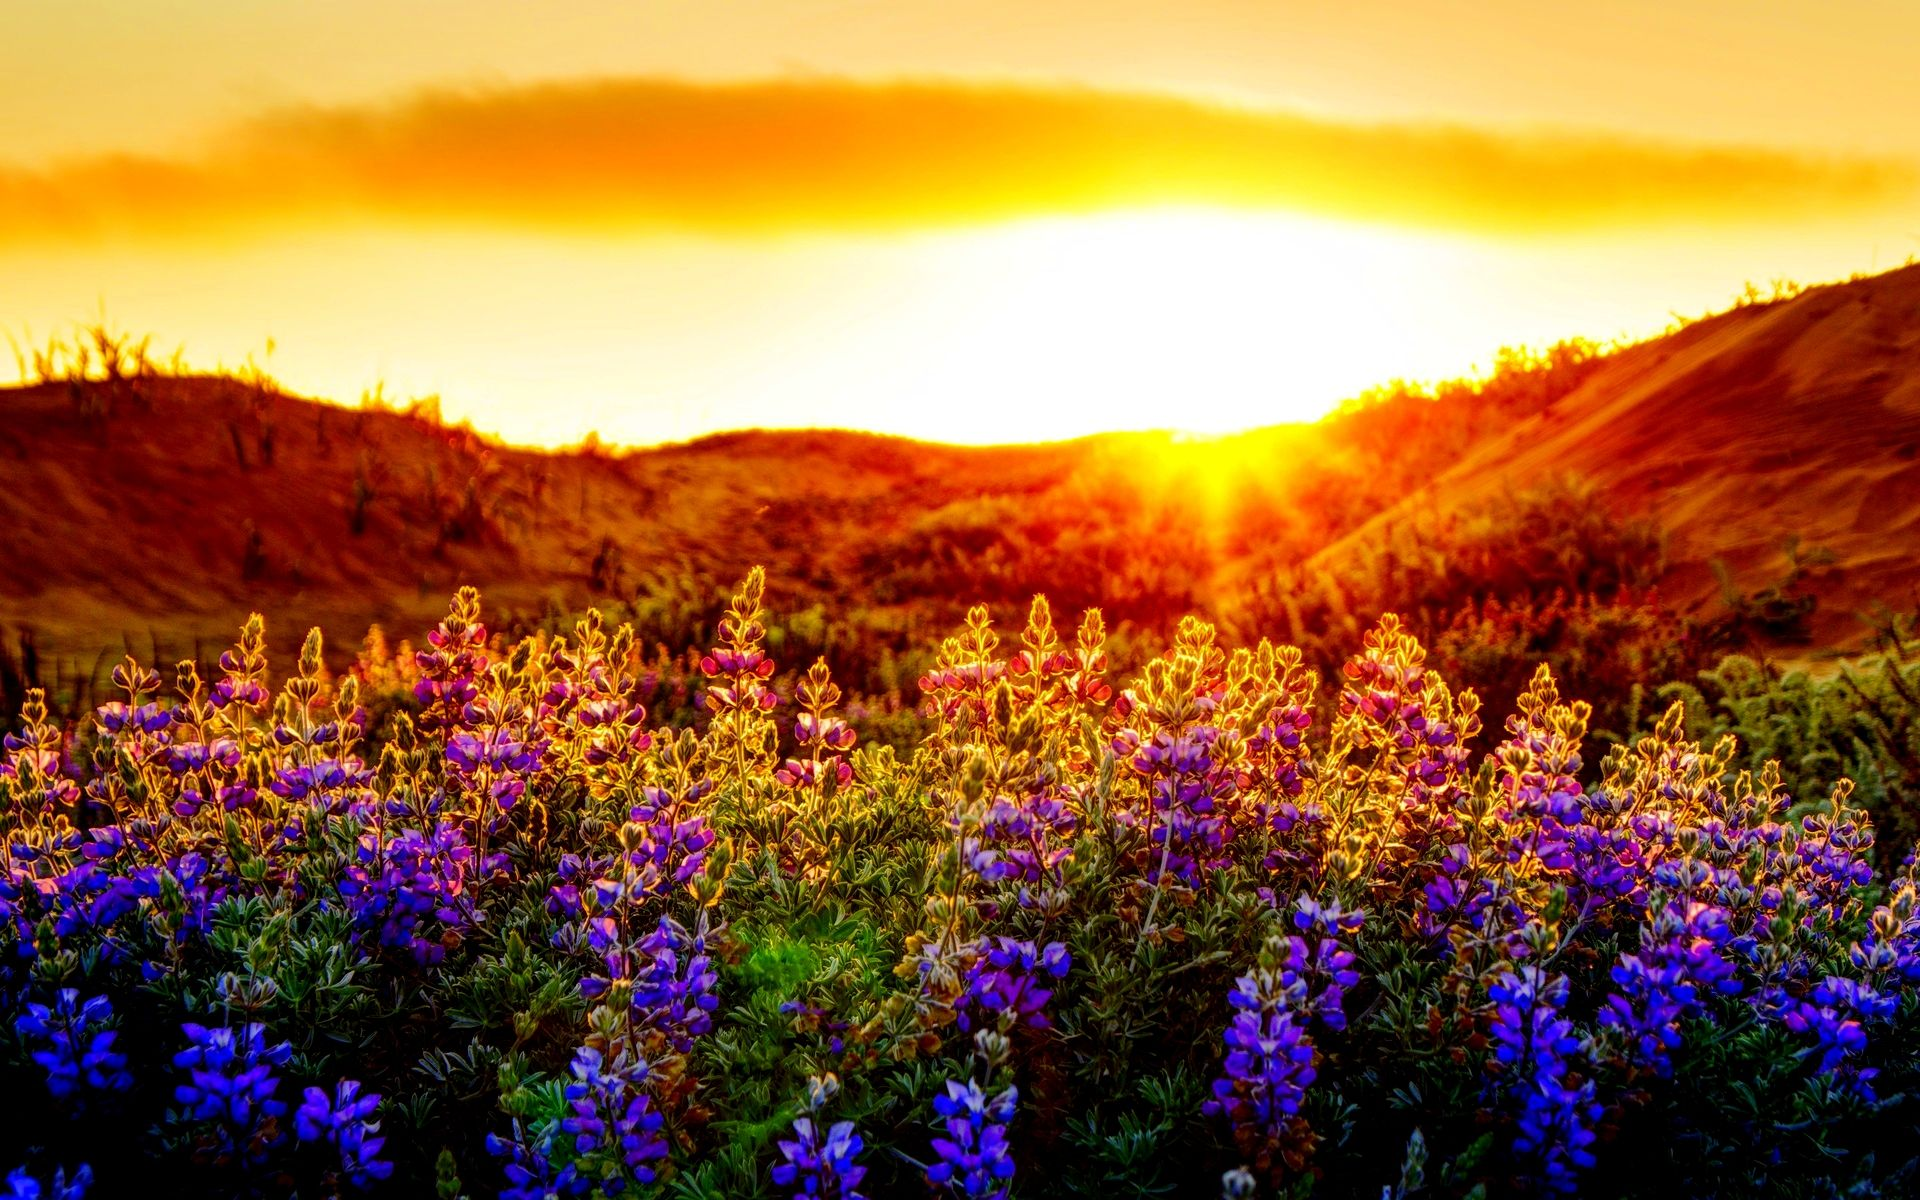 Sunset Wallpapers Free Download HD Latest Beautiful Wonderful Images